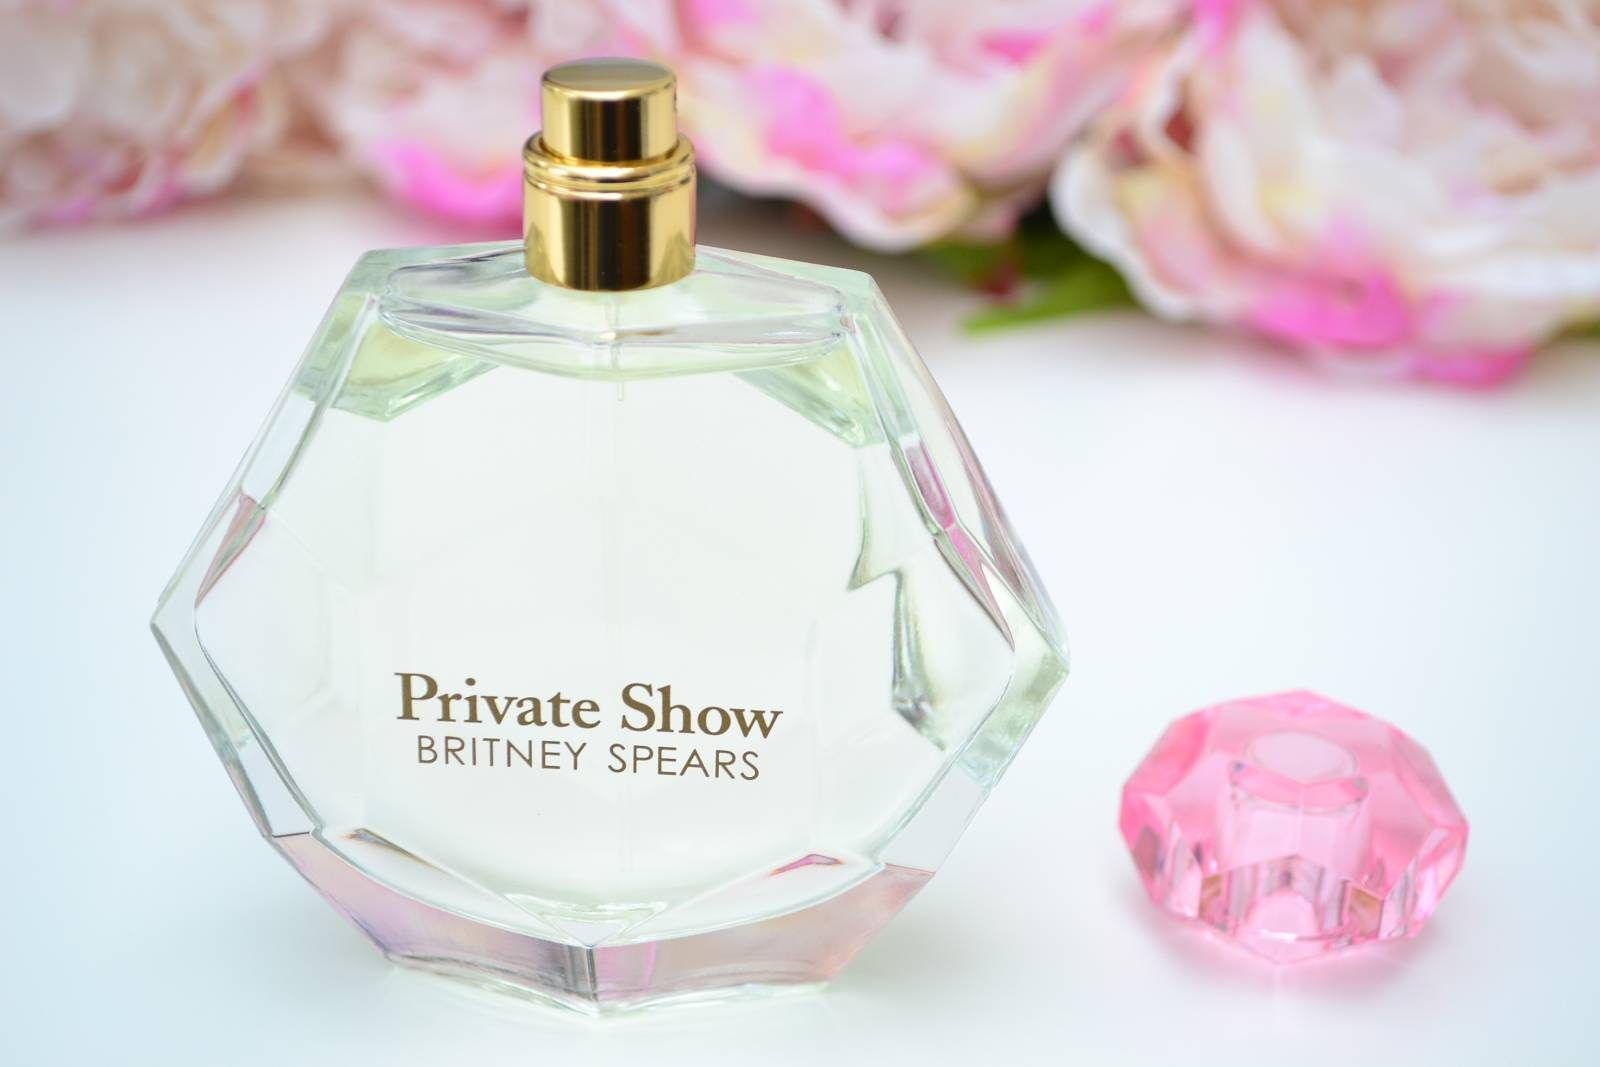 britney-spears-private-show-perfume